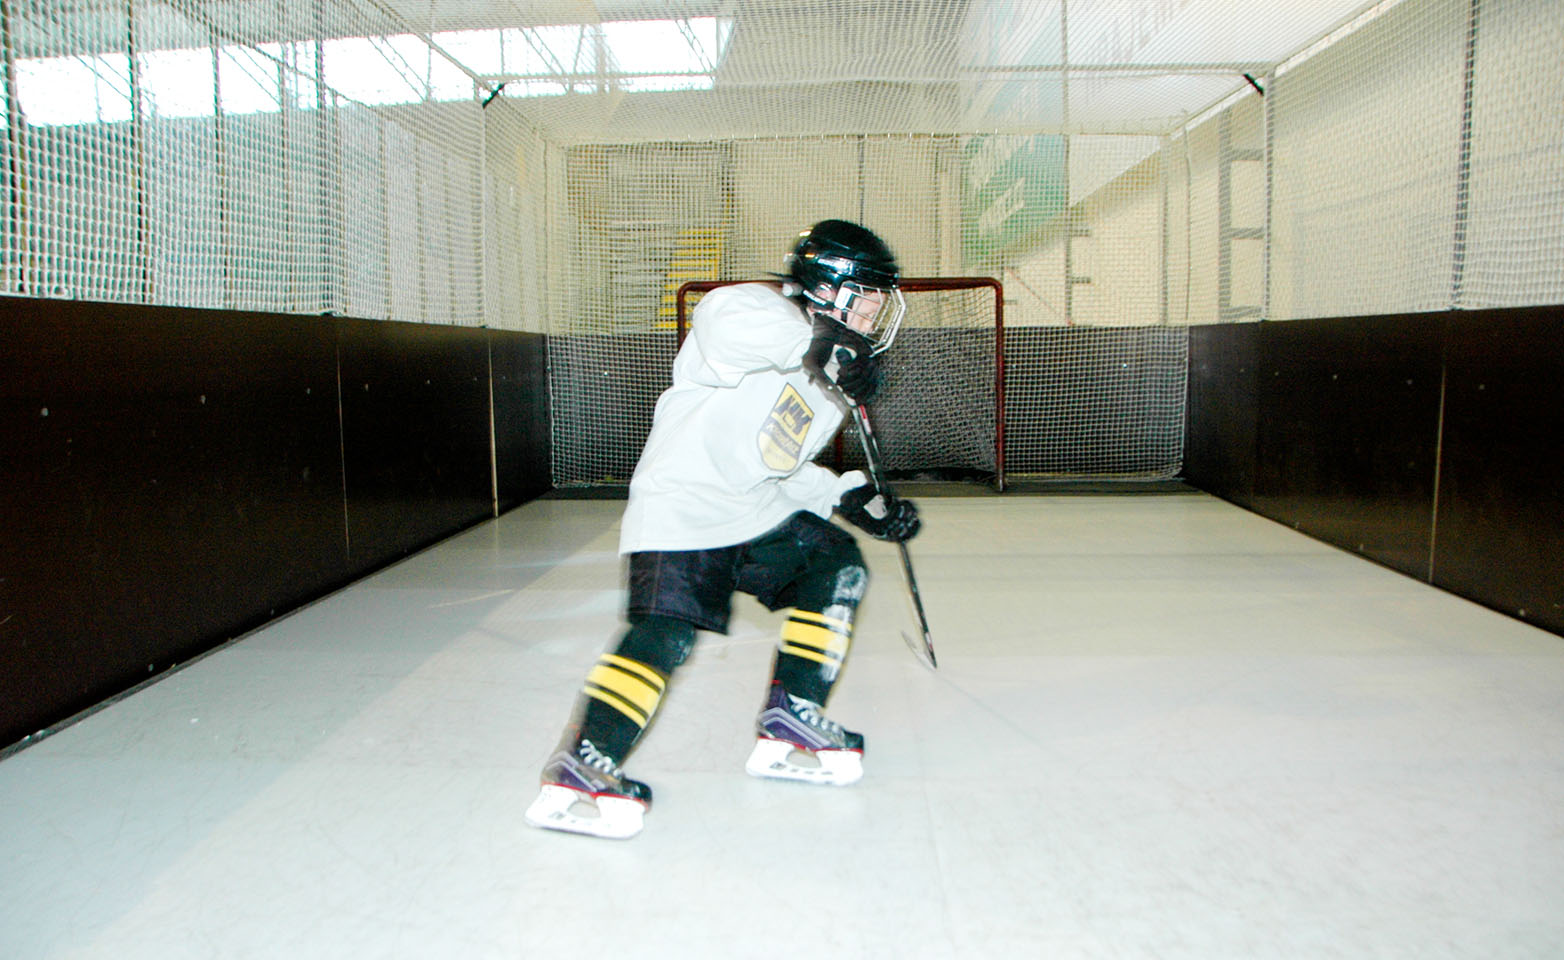 Ice hockey player on artificial ice surface